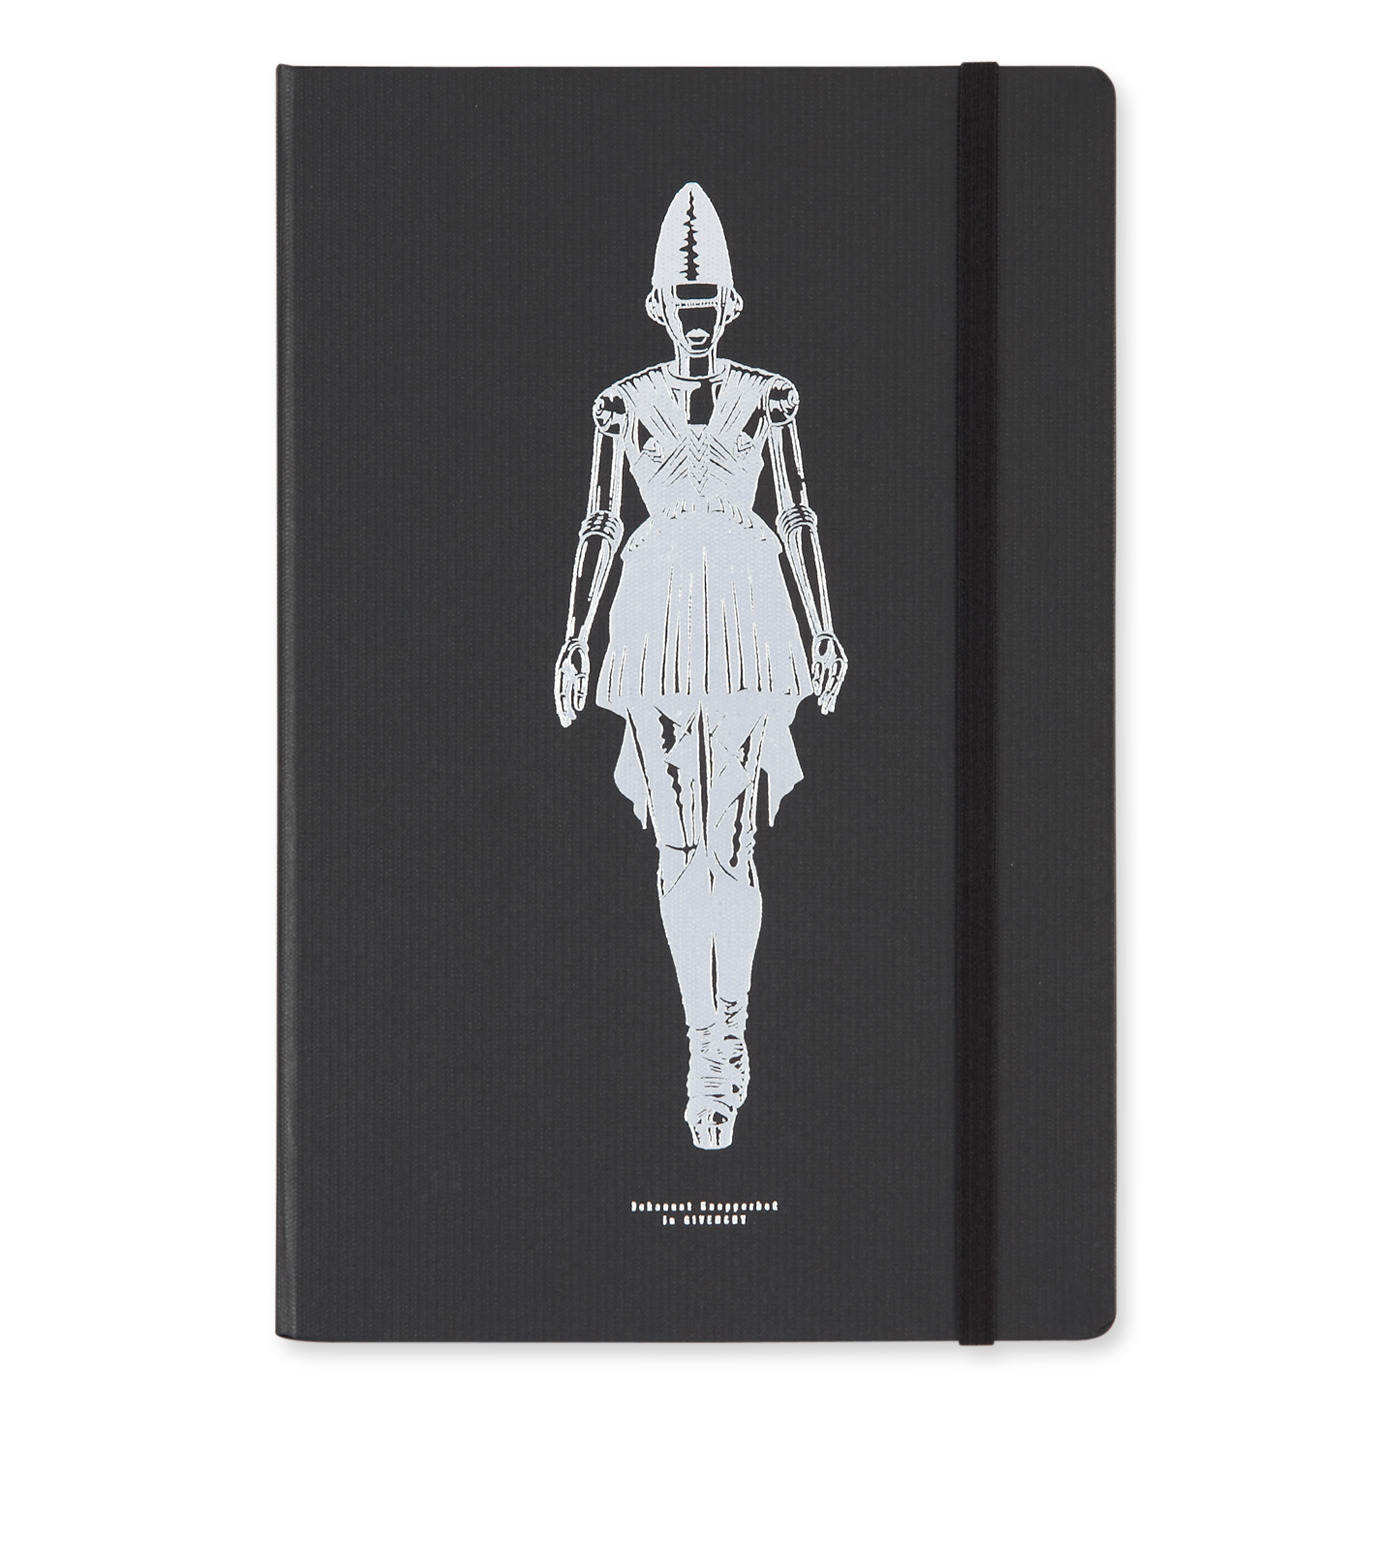 Fashematical(ファシェマティカル)のNote book-NONE(OTHER-GOODS/OTHER-GOODS)-Note-Givenchy 拡大詳細画像1